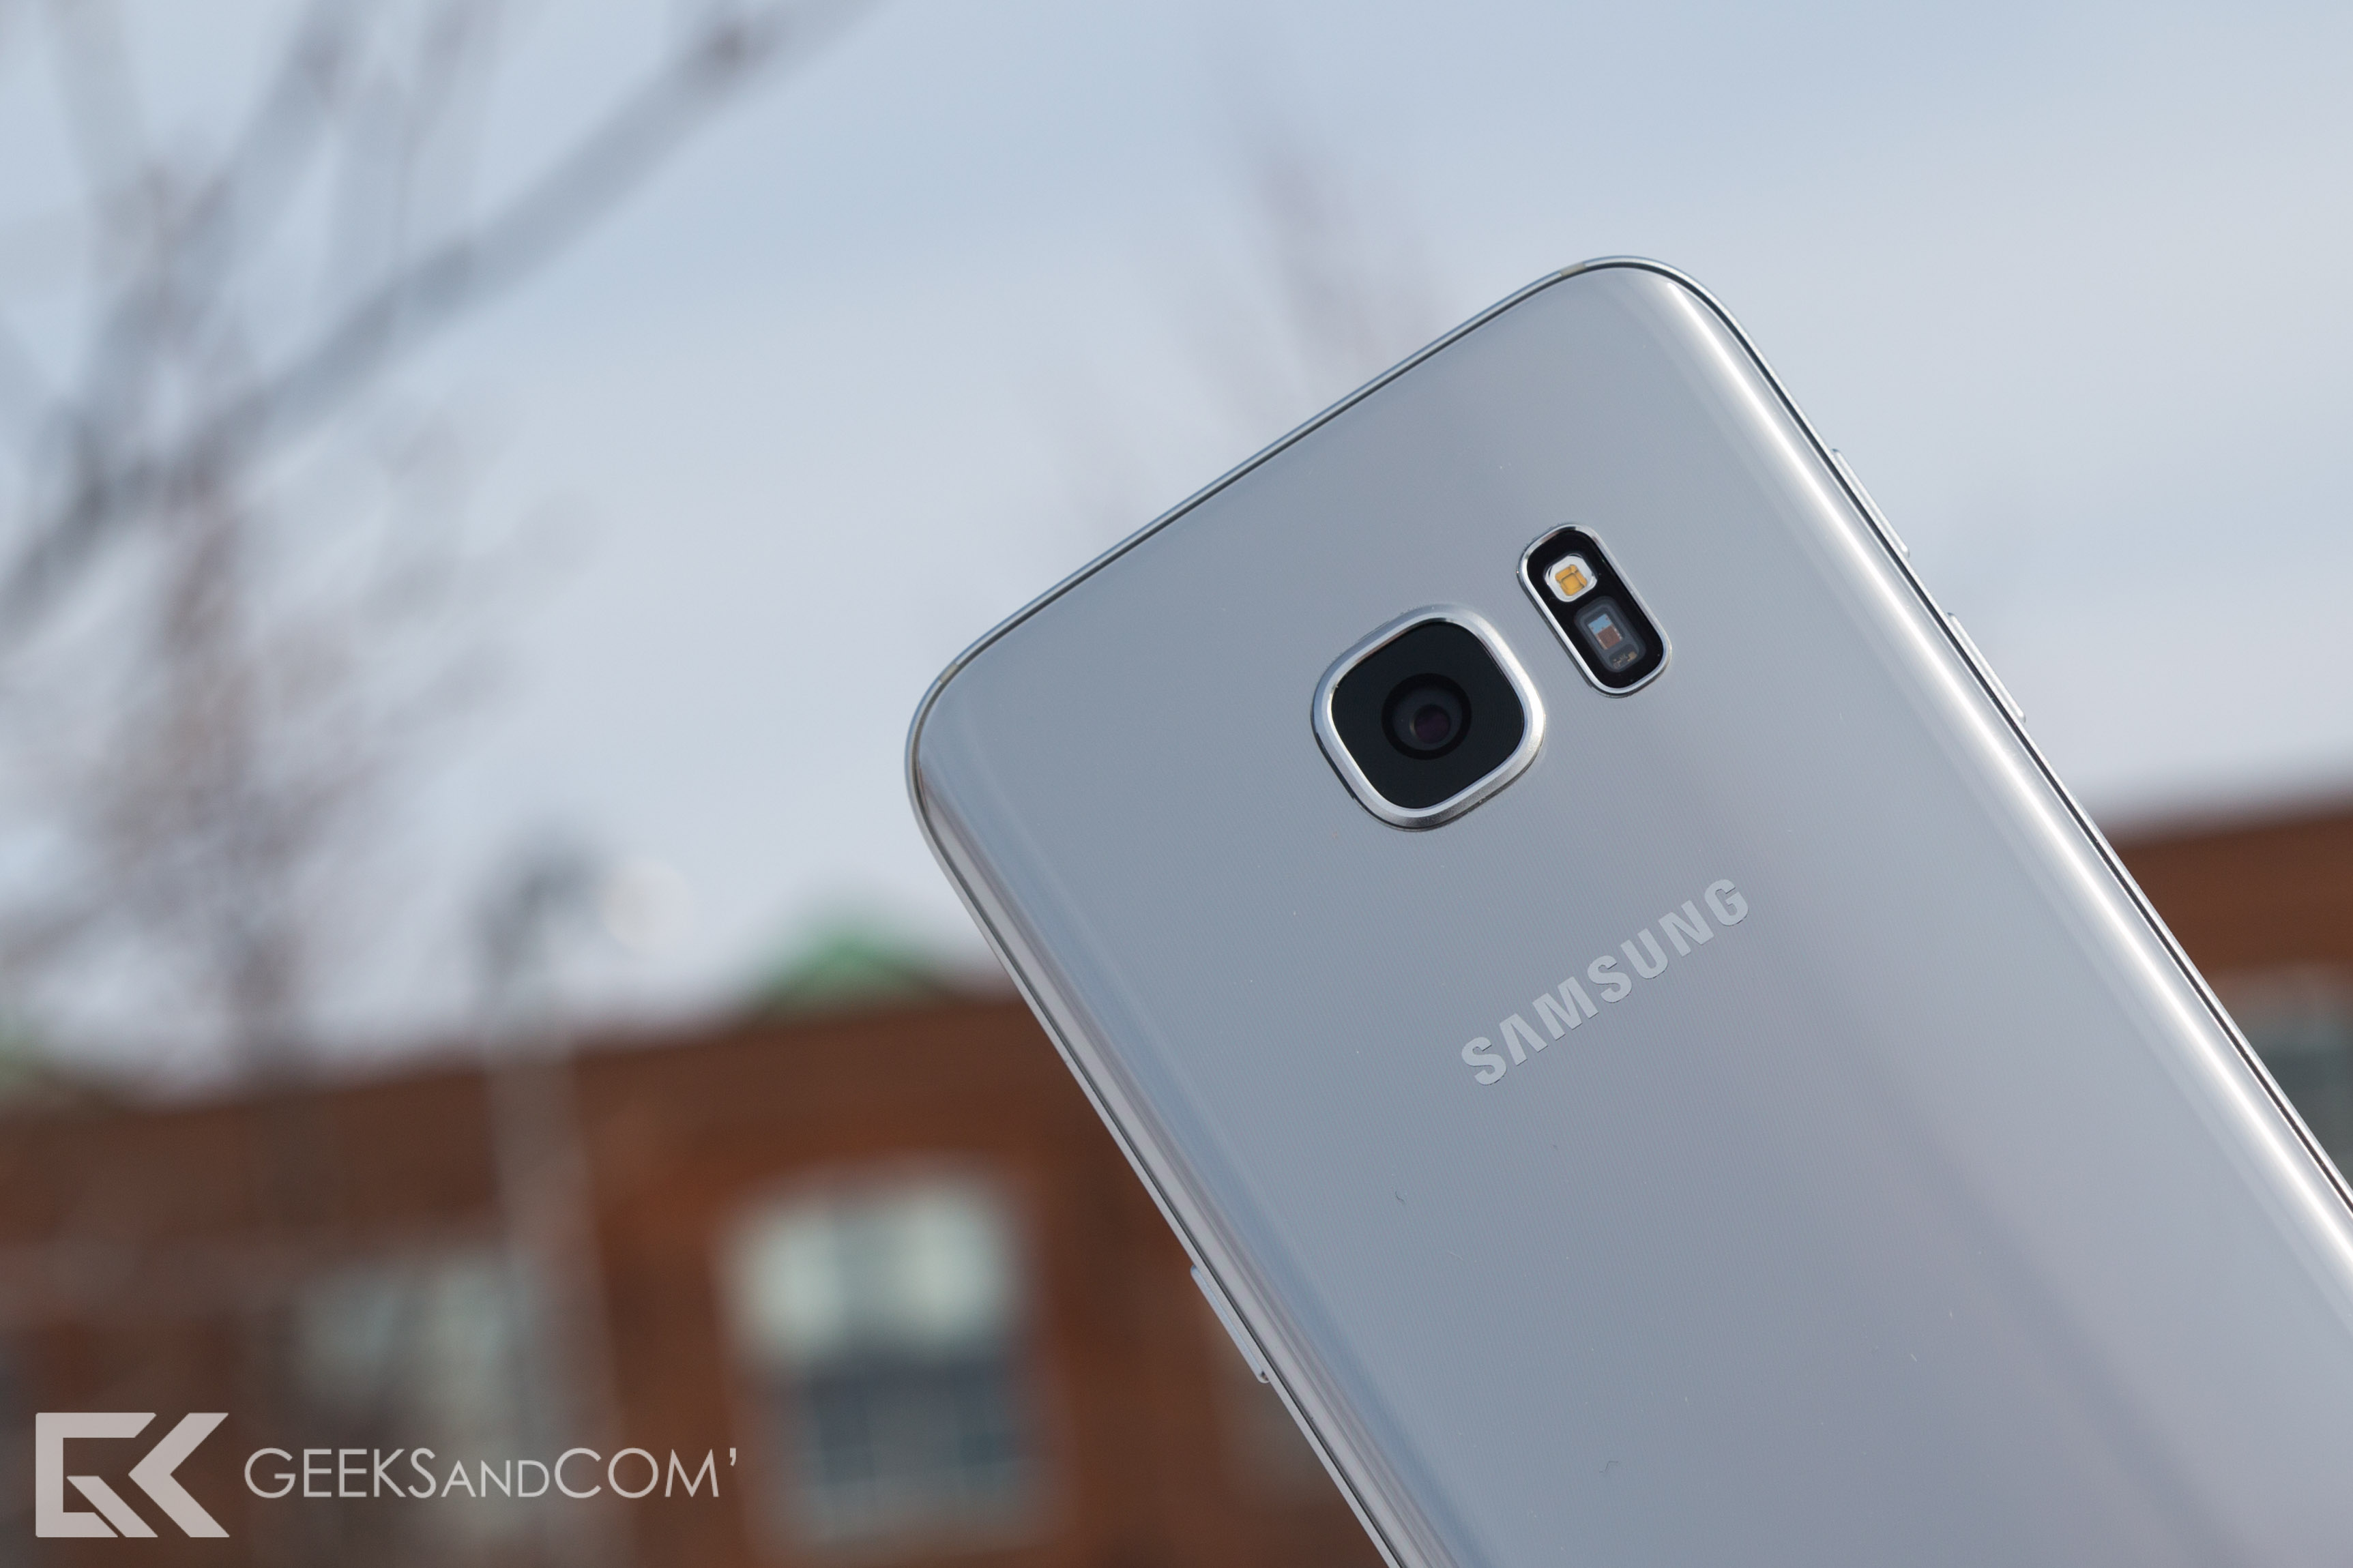 Samsung Galaxy S7 - Test Geeks and Com -1